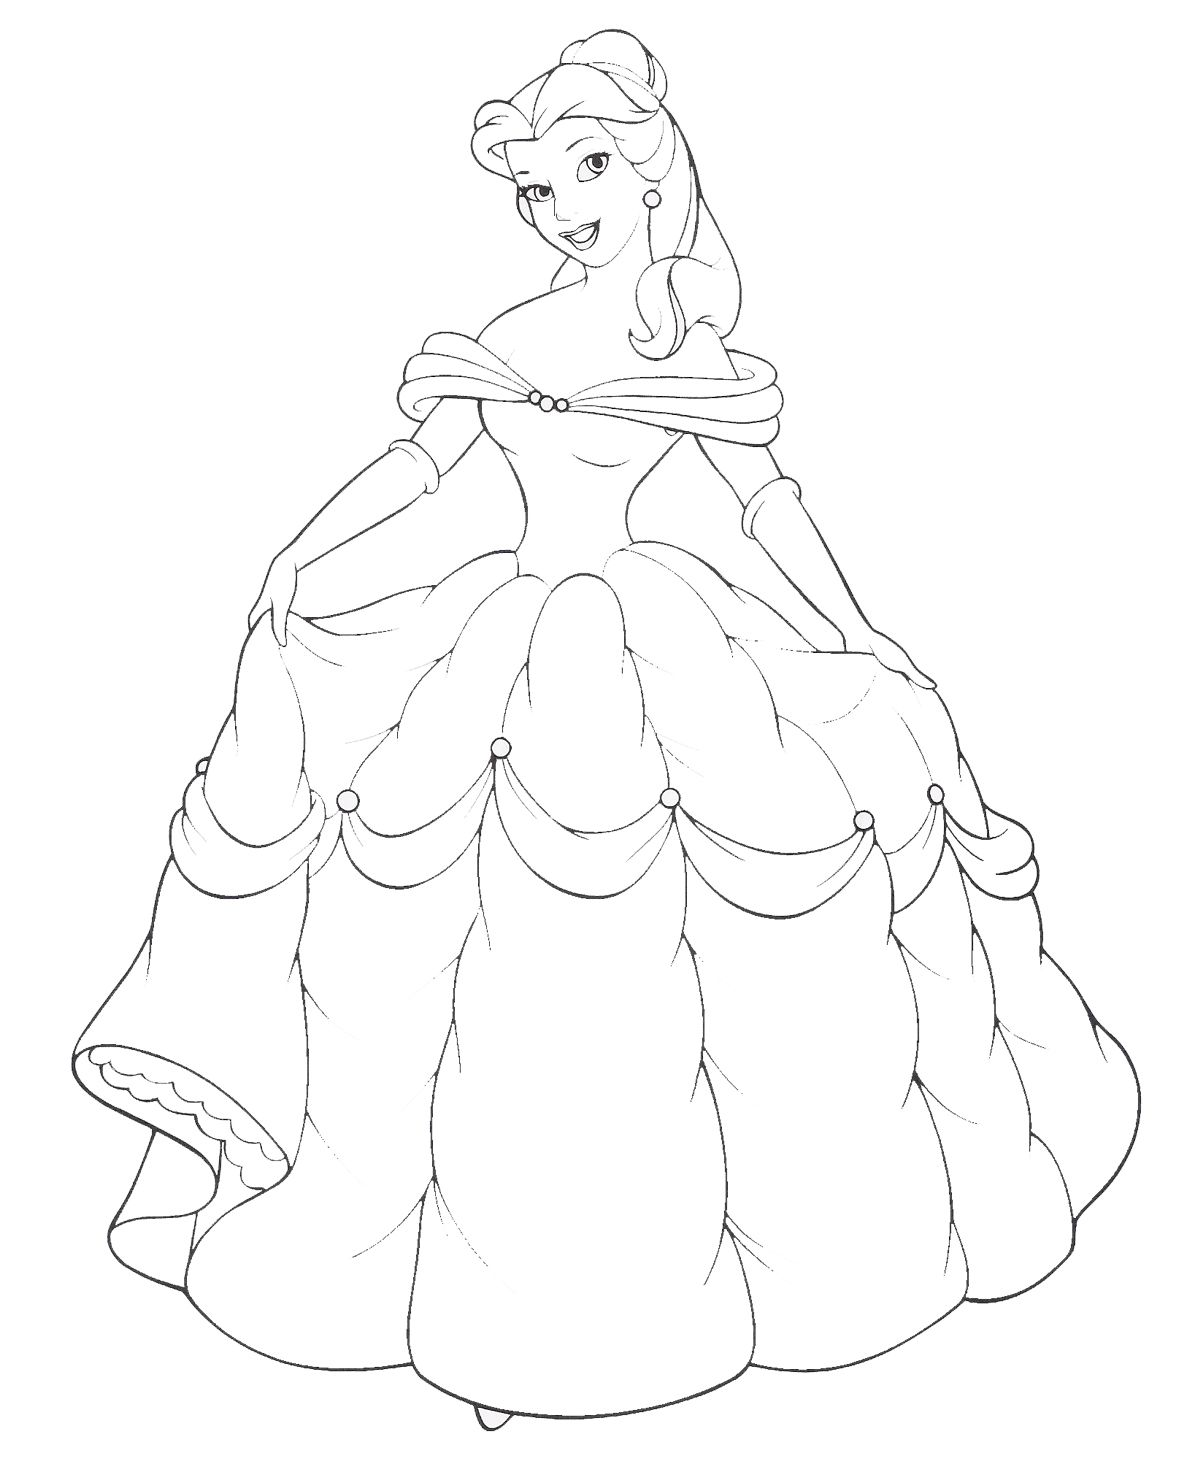 Disney Princess Belle And Her Gown Coloring Sheet To Paint On Canvas As A Silhouette